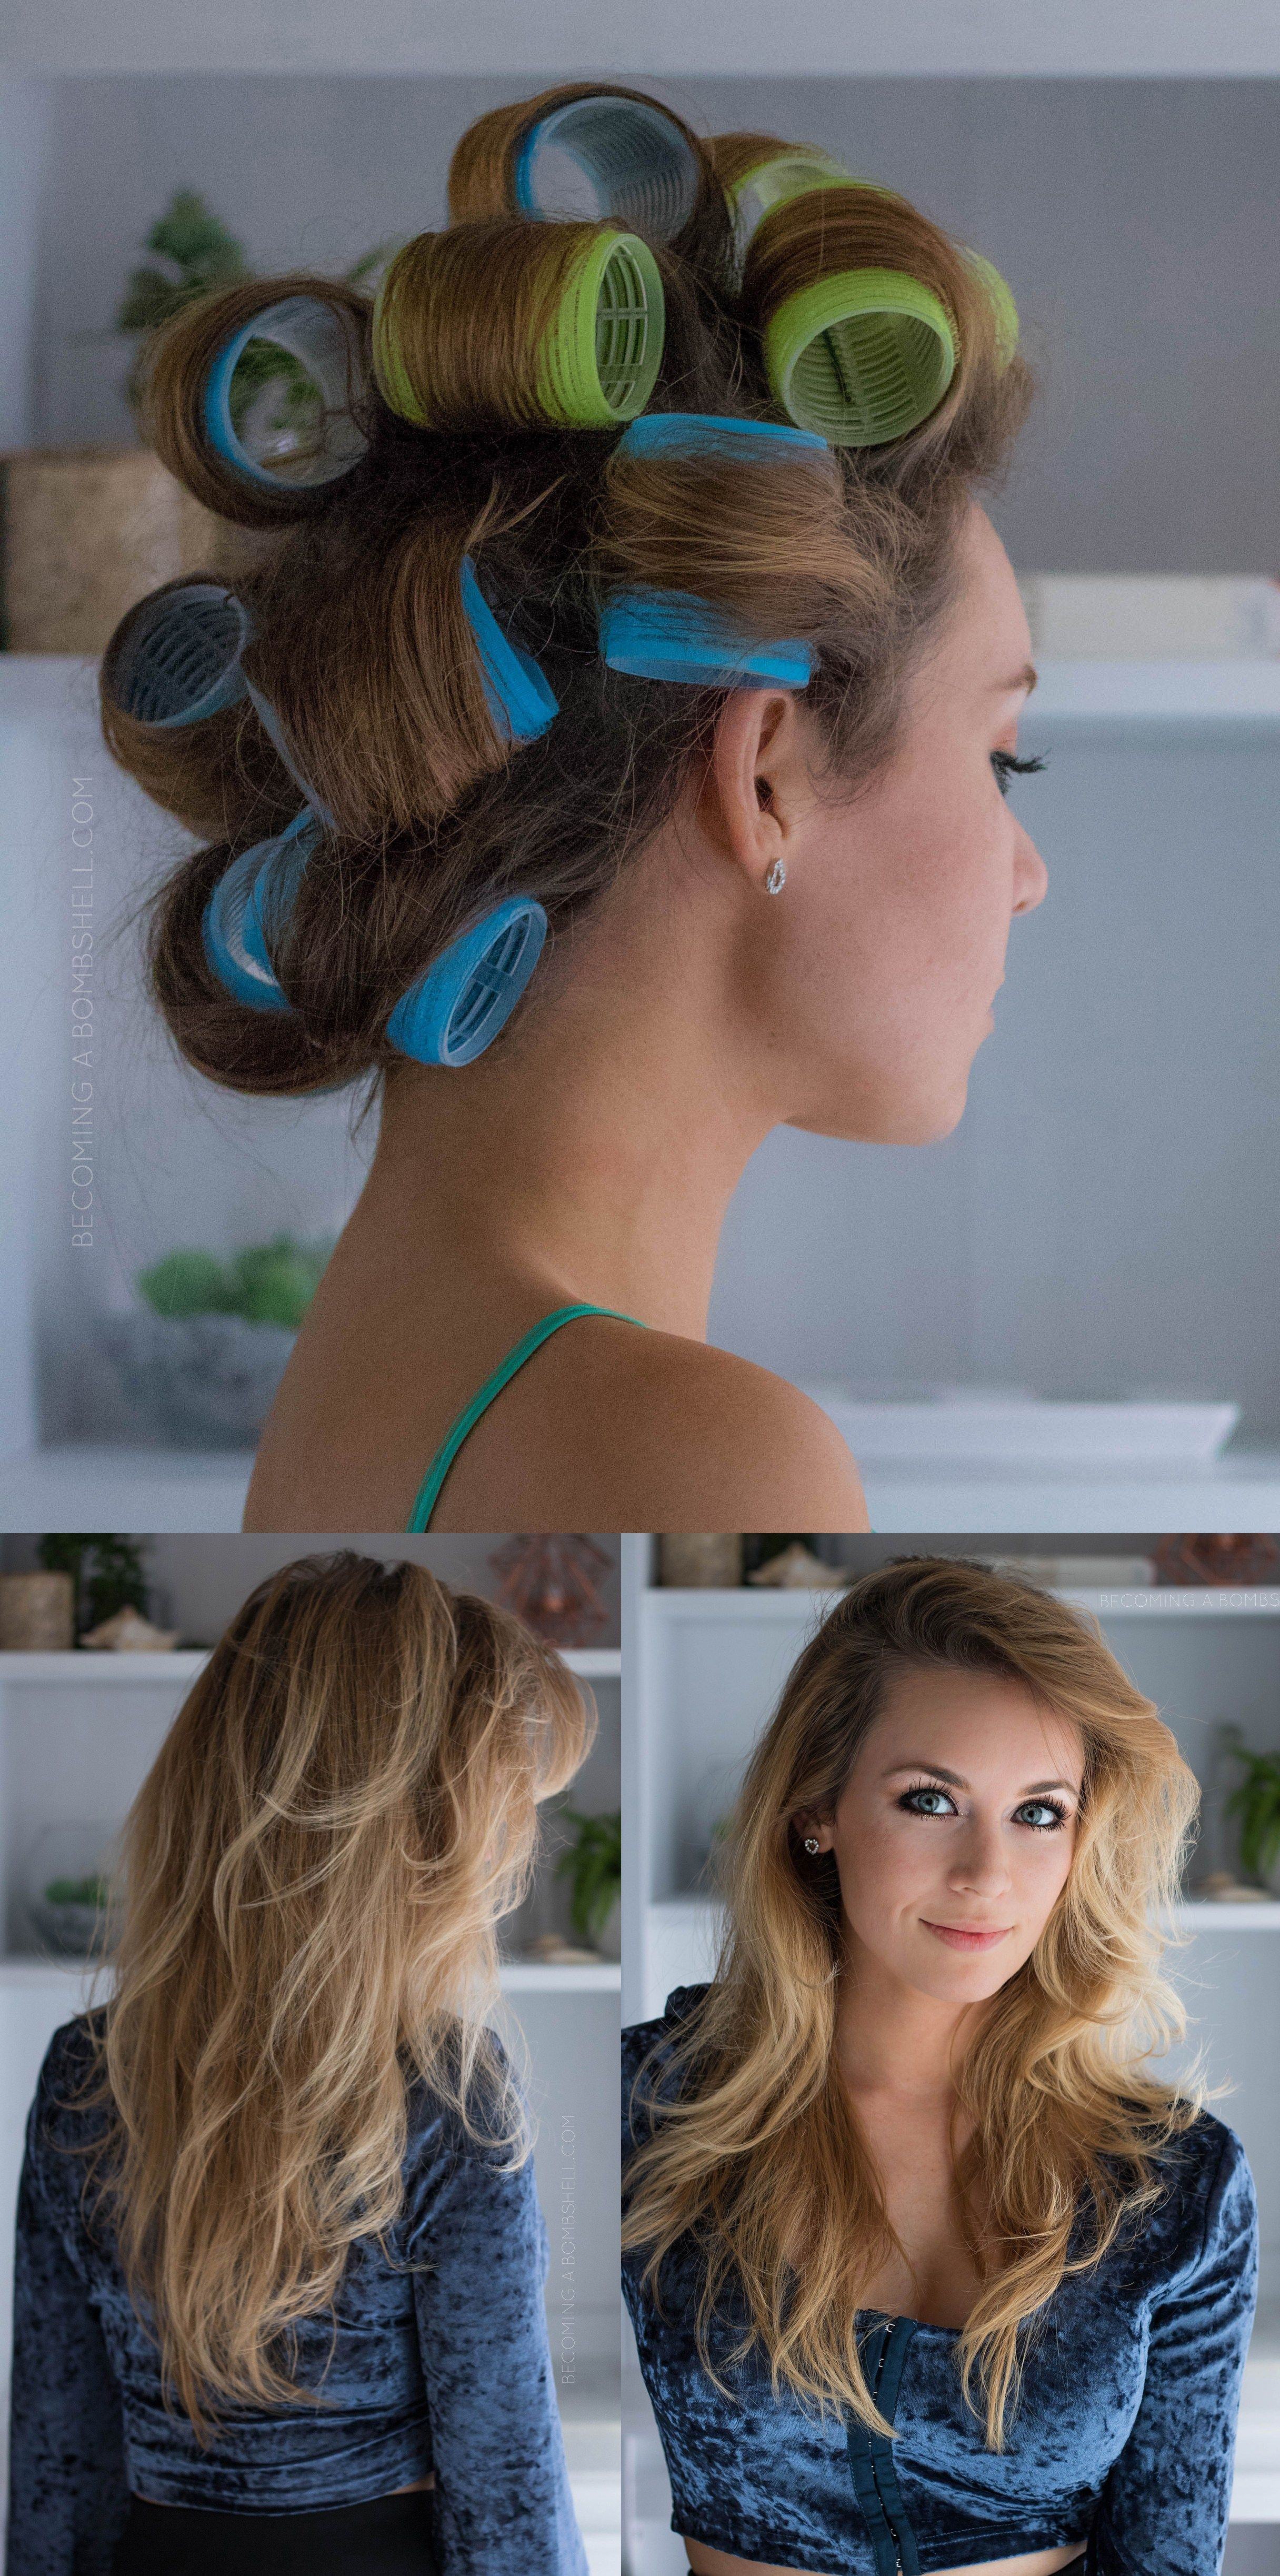 How To Use Velcro Rollers For Voluminous Hair Becoming A Bombshell Heat Free Hairstyles Thin Fine Hair Bombshell Curls